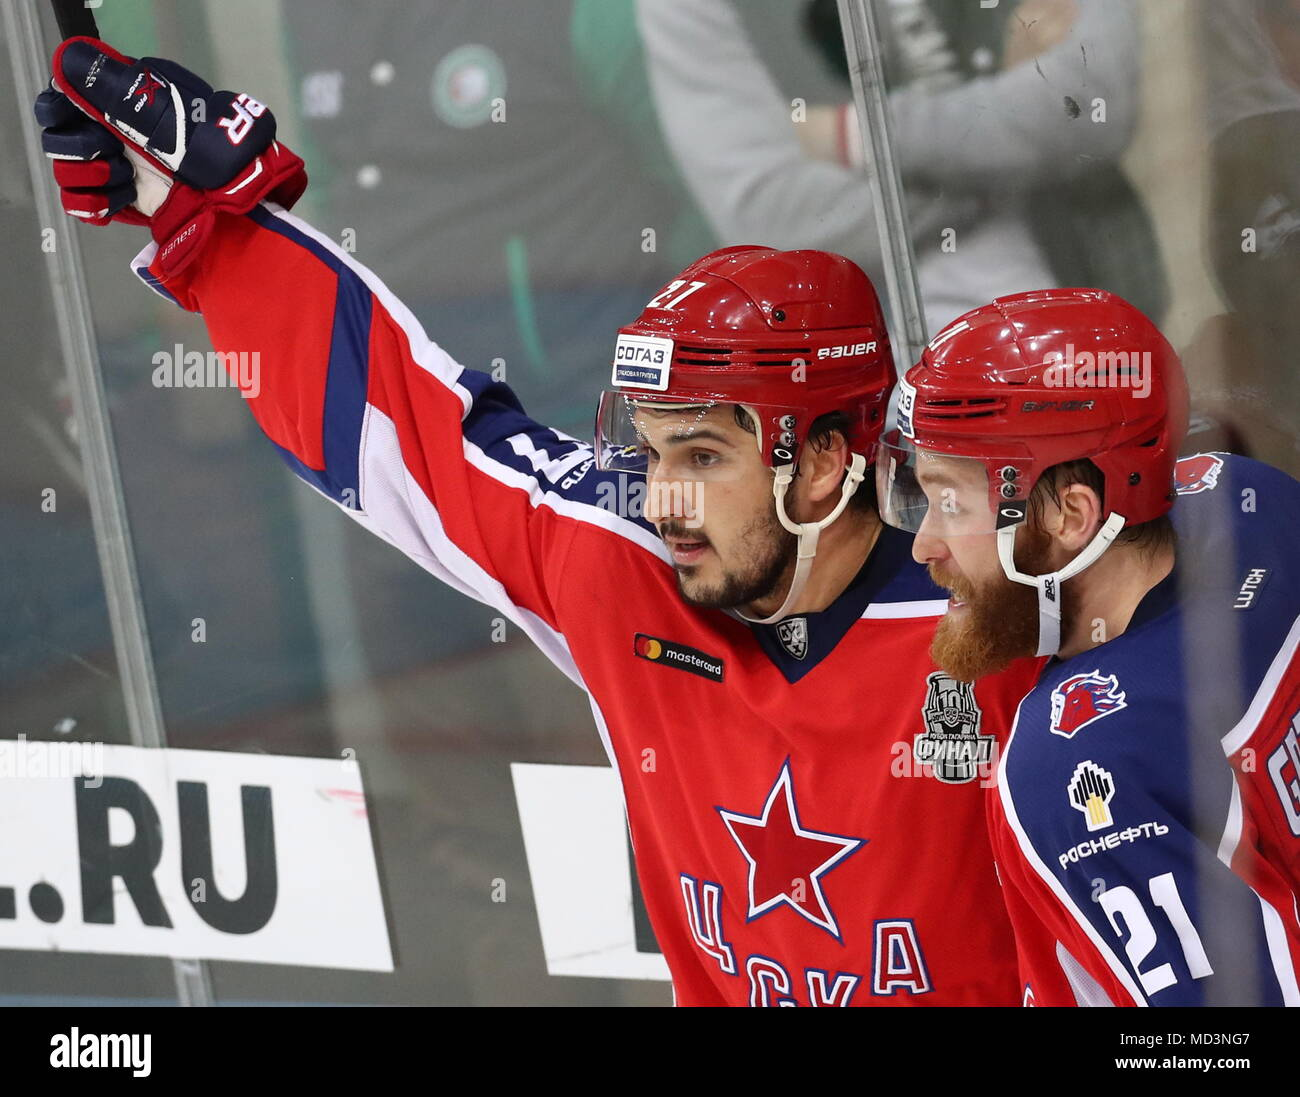 Moscow, Russia. 18th Apr, 2018. MOSCOW, RUSSIA - APRIL 18, 2018: CSKA Moscow's Kirill Petrov (L) and Mikhail Grigorenko celebrate victory in Leg 3 of the 2017/2018 Kontinental Hockey League Gagarin Cup final against Ak Bars Kazan at CSKA Ice Palace. HC CSKA Moscow won the game 3-2 in extra time. Stanislav Krasilnikov/TASS Credit: ITAR-TASS News Agency/Alamy Live News - Stock Image